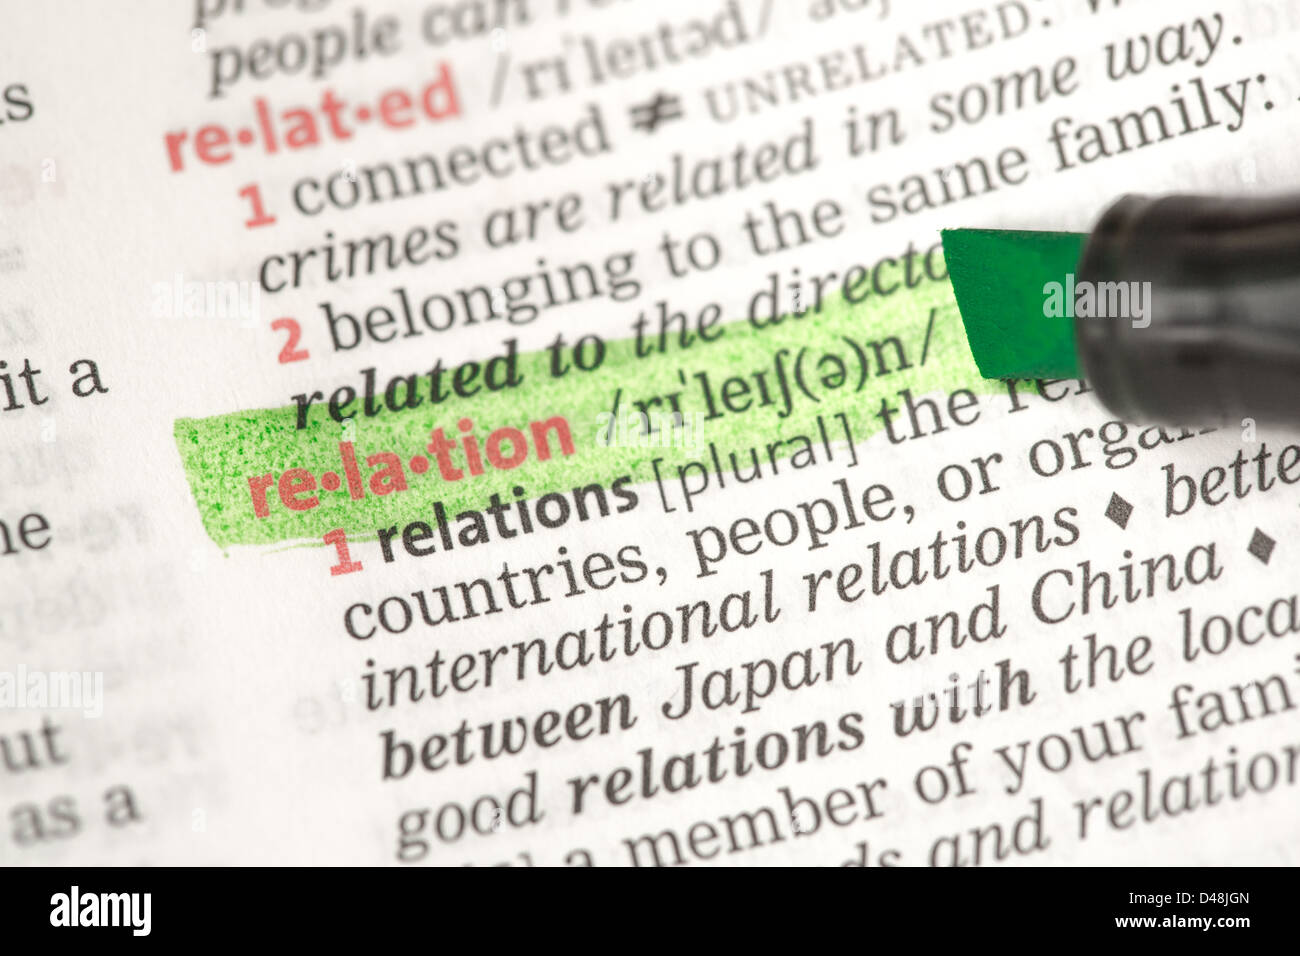 Relation definition highlighted in green - Stock Image